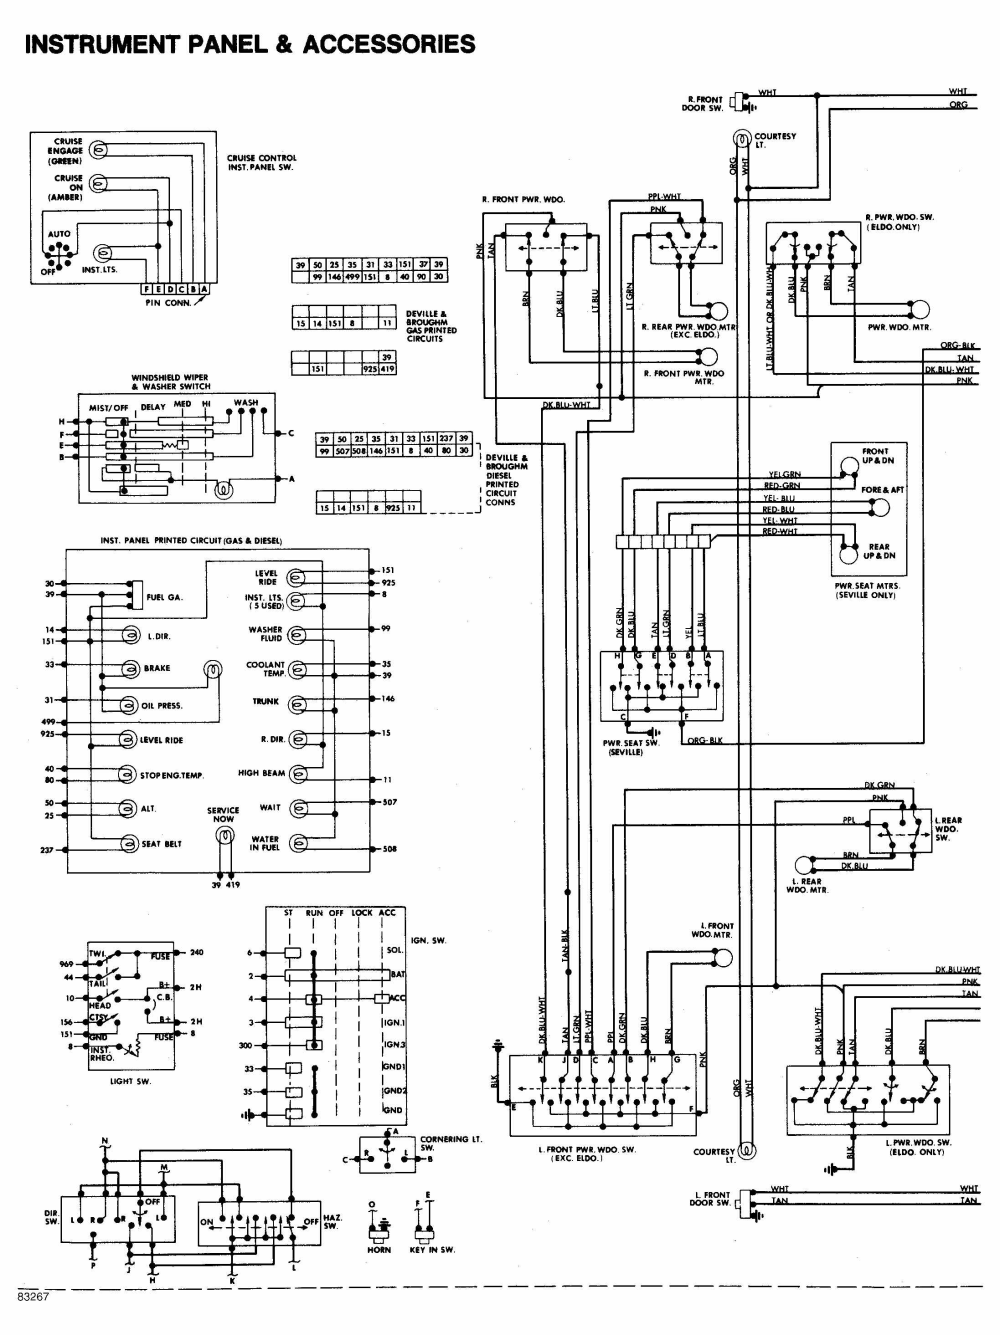 medium resolution of 2002 cadillac deville wiring harness wiring diagram files 2002 cadillac deville radio wiring harness 2002 cadillac deville wiring harness